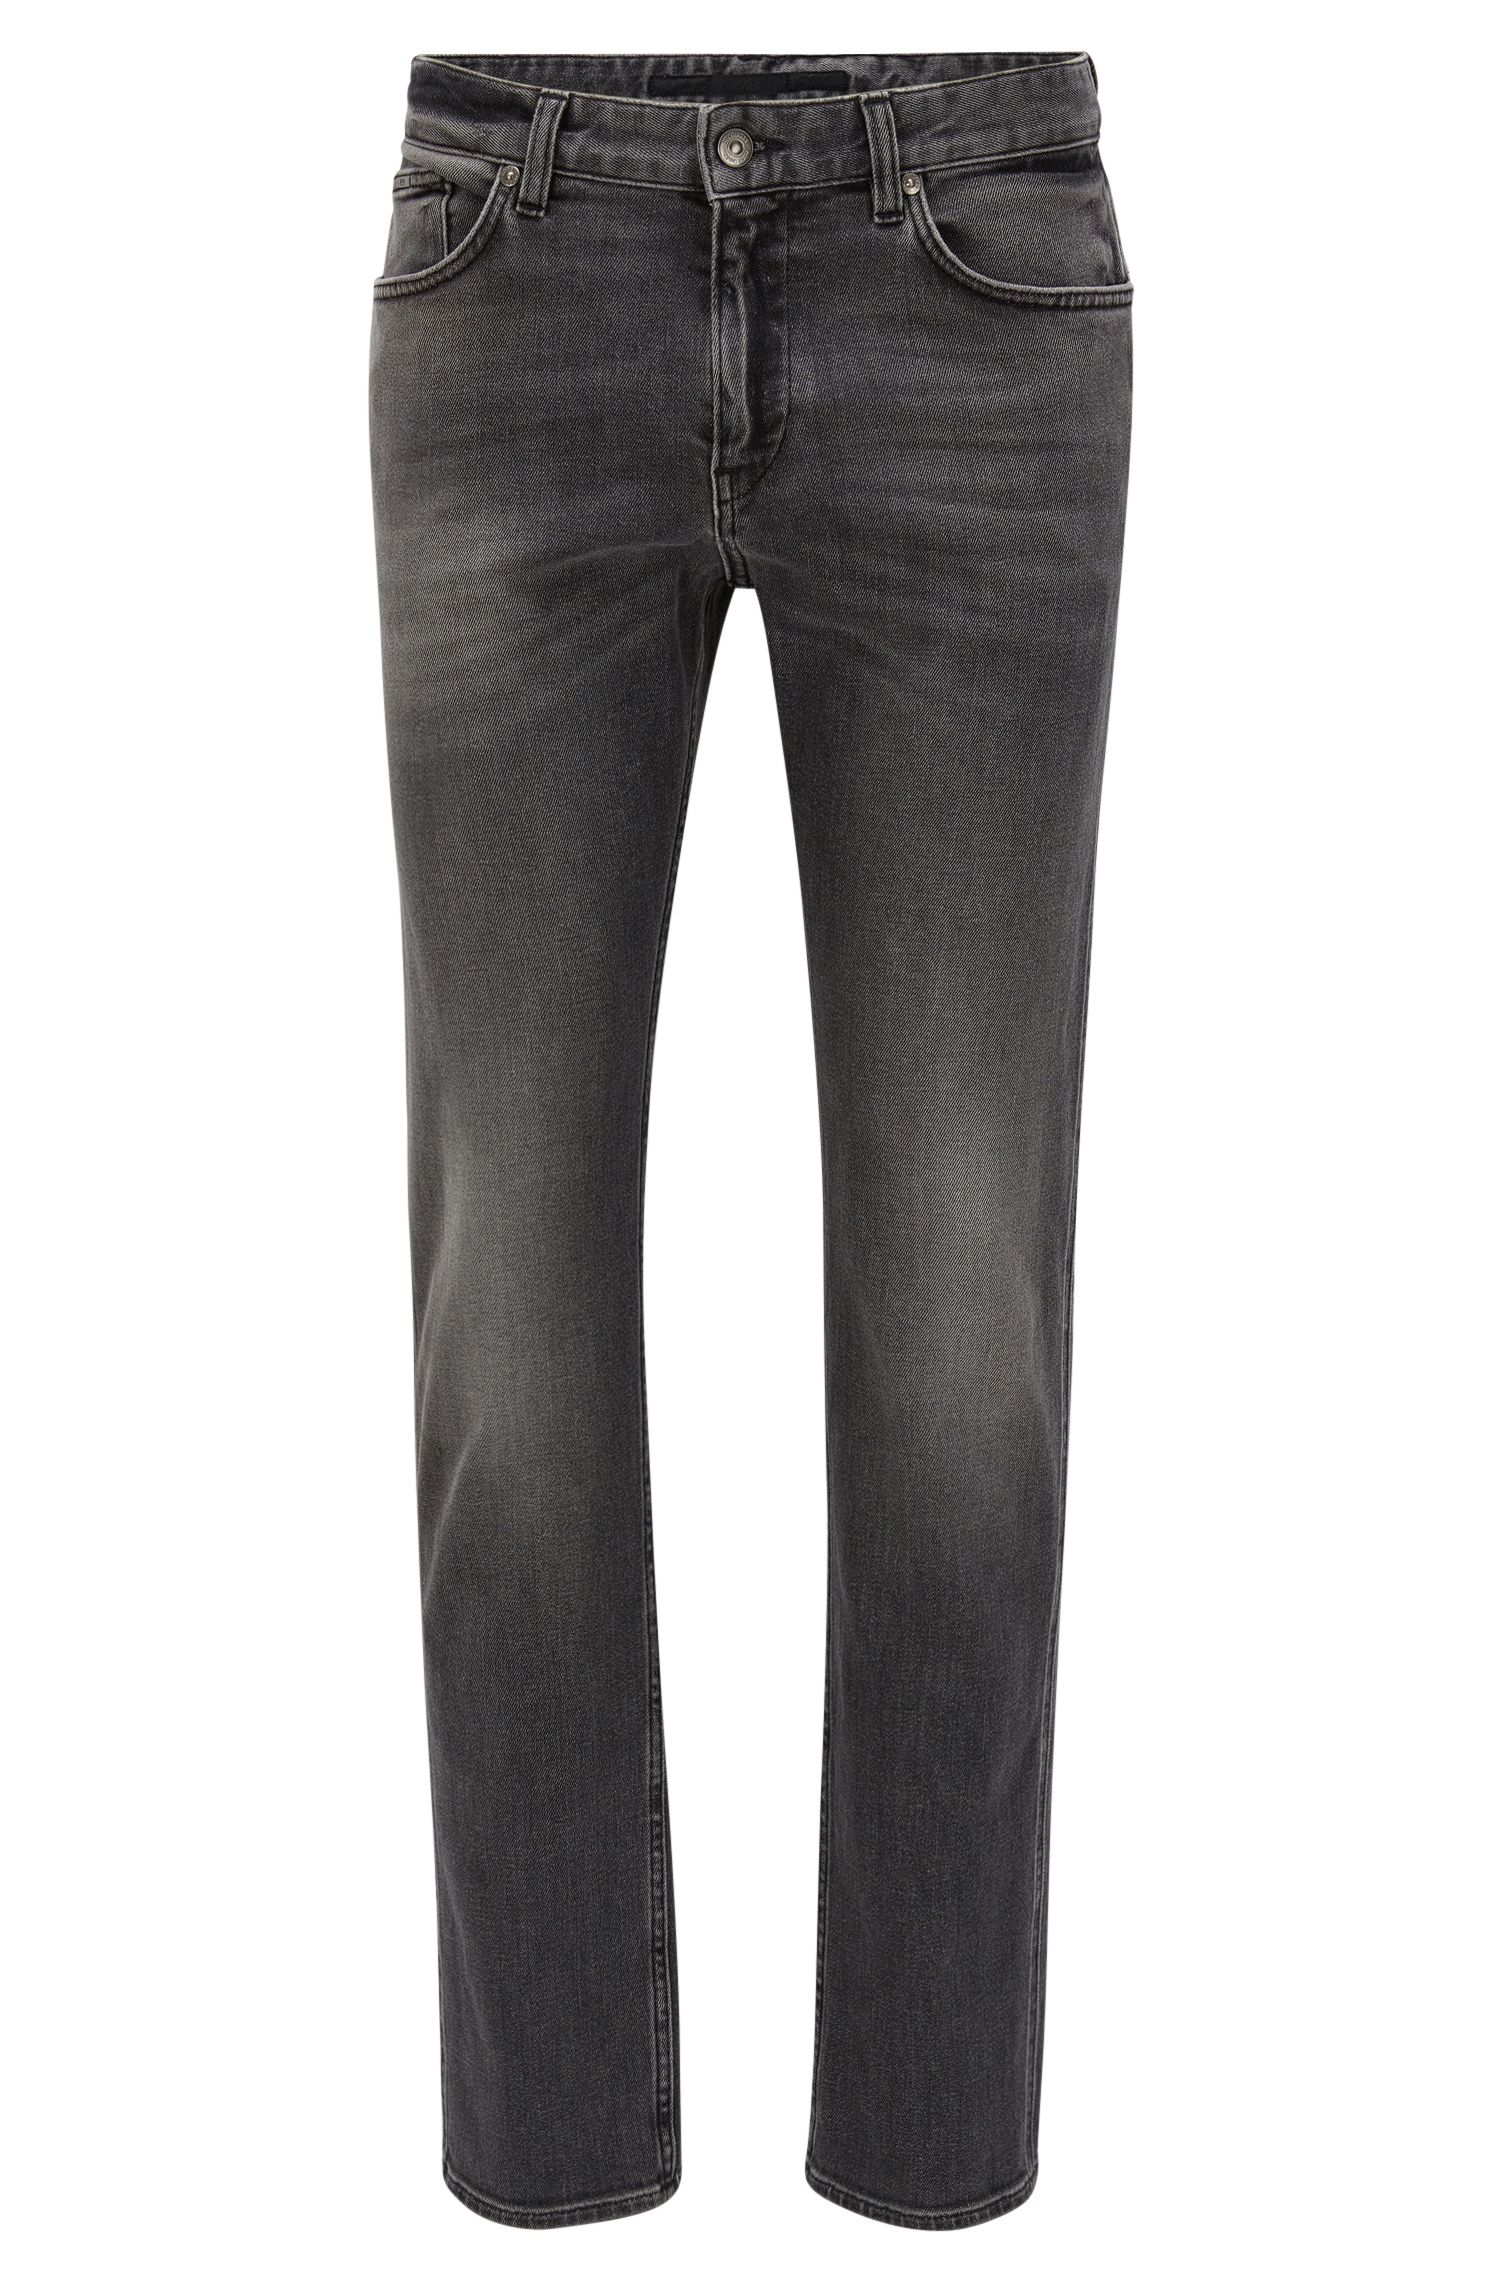 Jeans Slim Fit gris en denim stretch, au délavage moyen